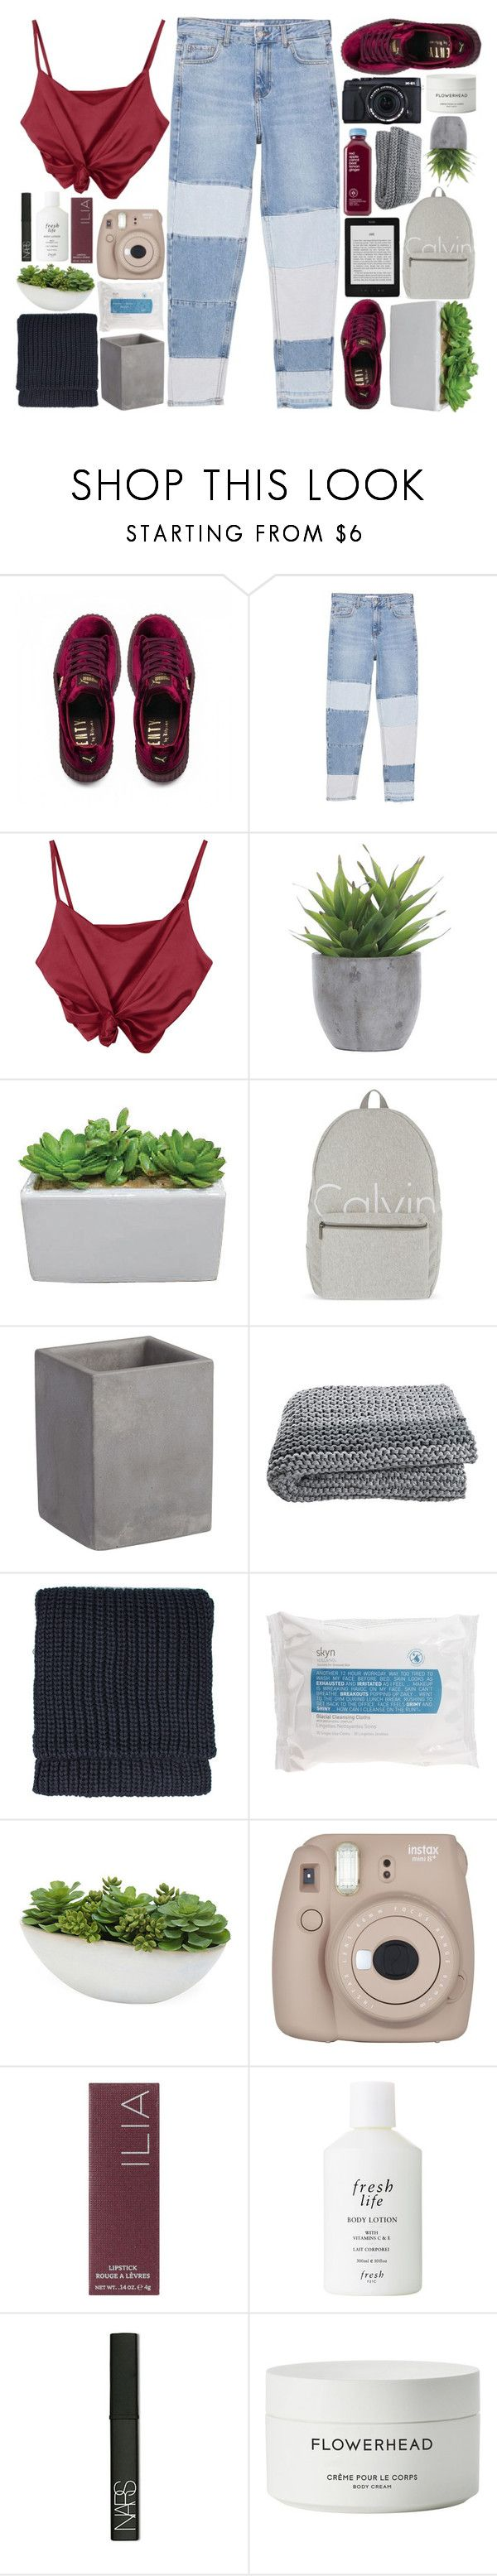 """""""LIKE TO JOIN MY TAGLIST"""" by jess-innes ❤ liked on Polyvore featuring Puma, MANGO, Lux-Art Silks, Calvin Klein, CB2, Fujifilm, Topshop, Skyn Iceland, Distinctive Designs and Ilia"""